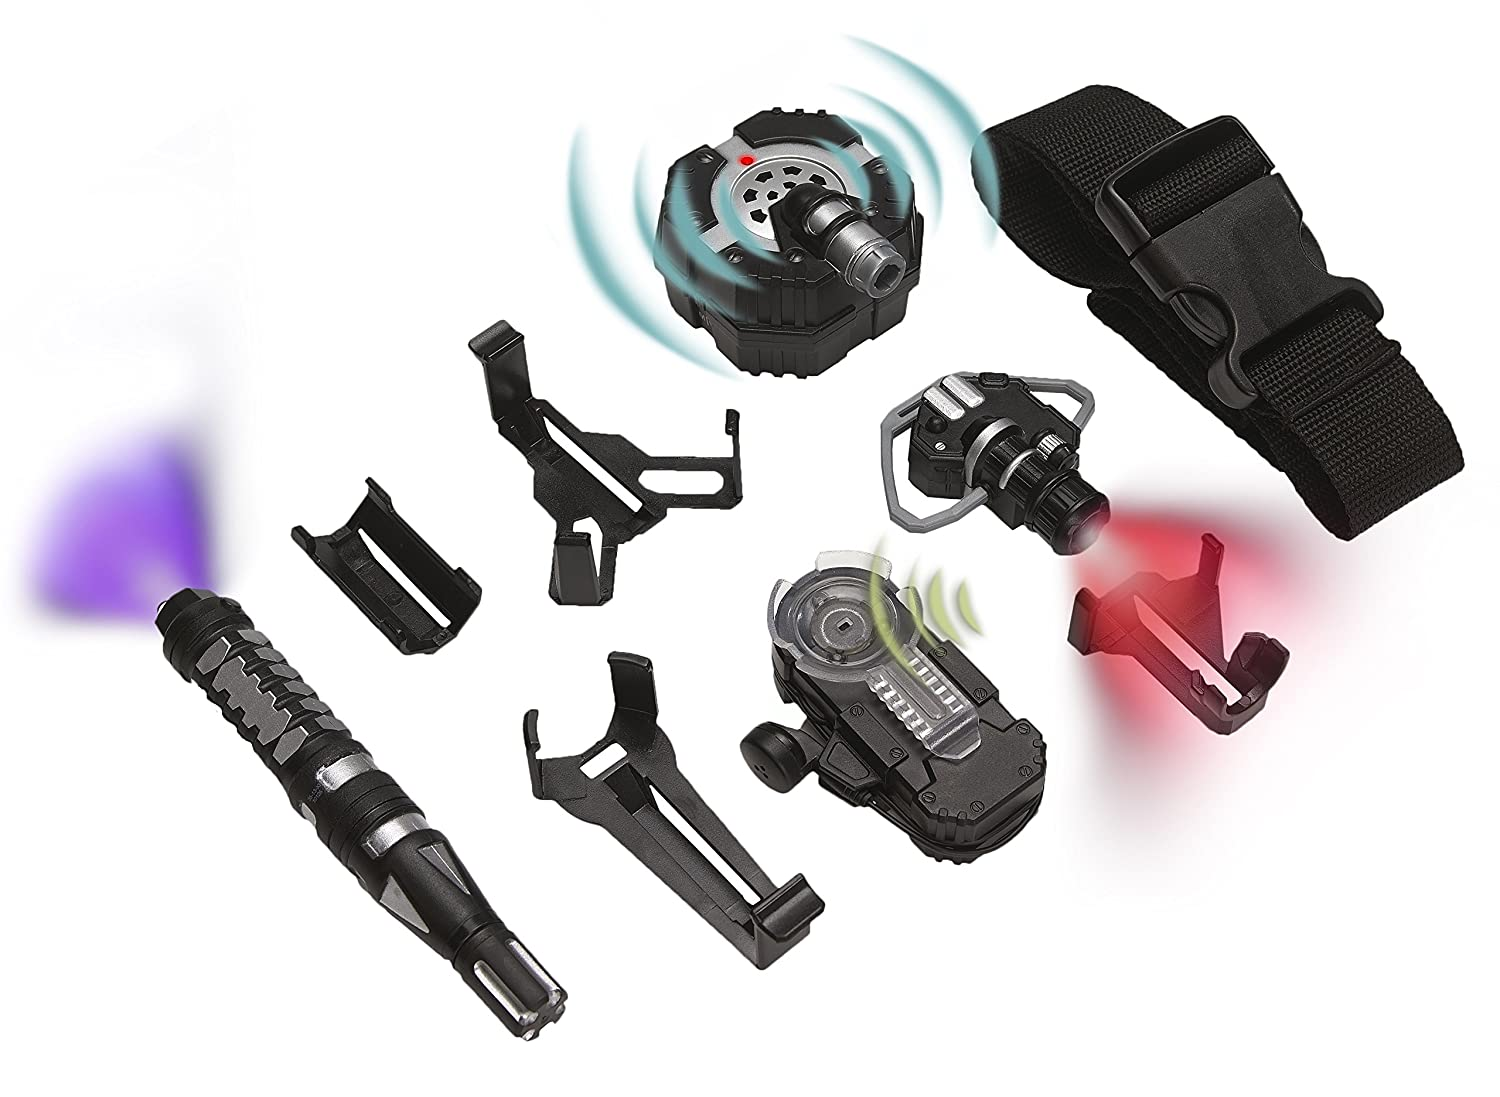 SpyX Micro Gear Set - 4 Must-Have Spy Tools Attached to an Adjustable Belt